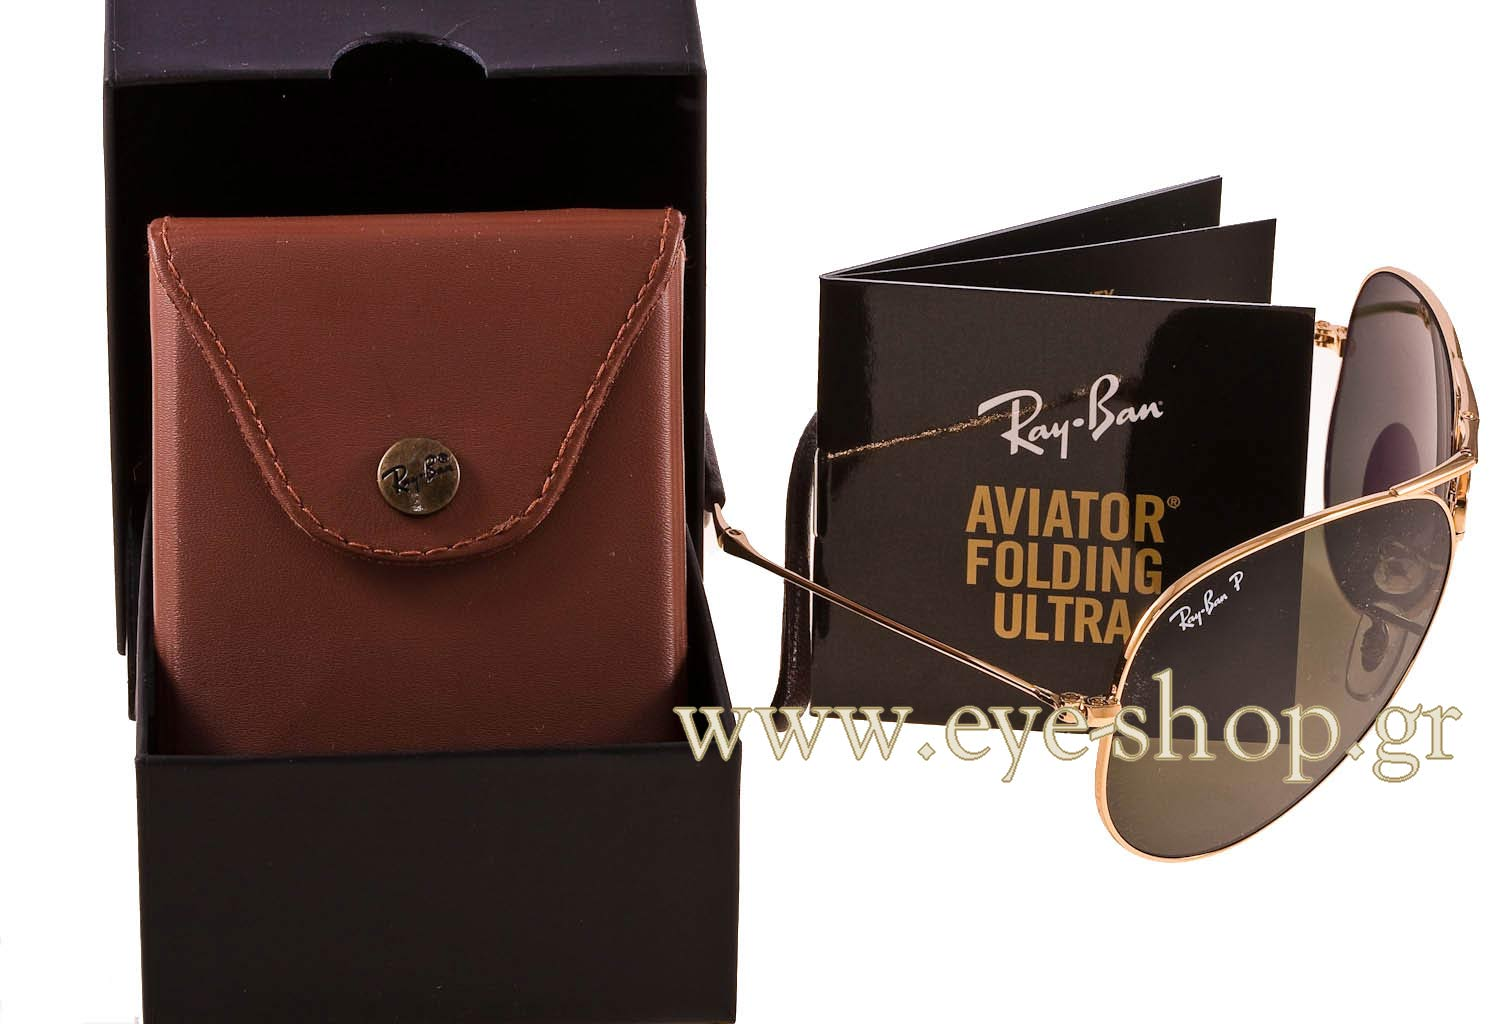 Rayban model Aviator Folding 3479 color KQ 001 N5 Ultra Aviator Limited  edition 3a62e5f91e9a